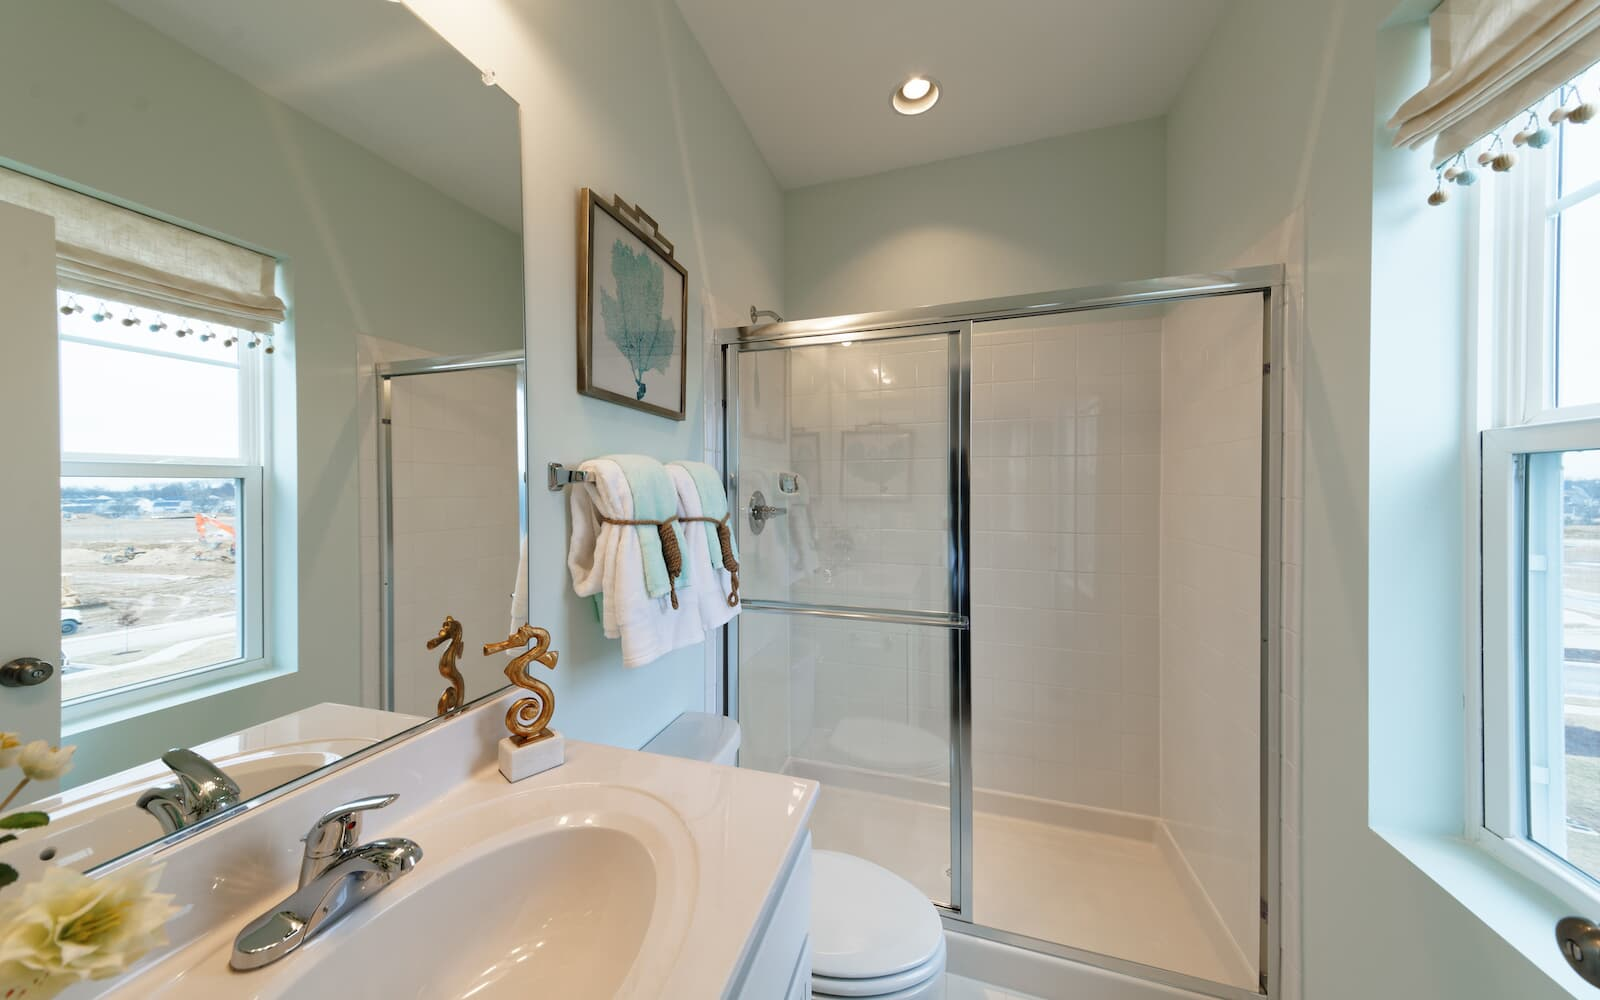 Skyline-bathroom-townhomes-winchester-va-snowden-bridge-brookfield-residential